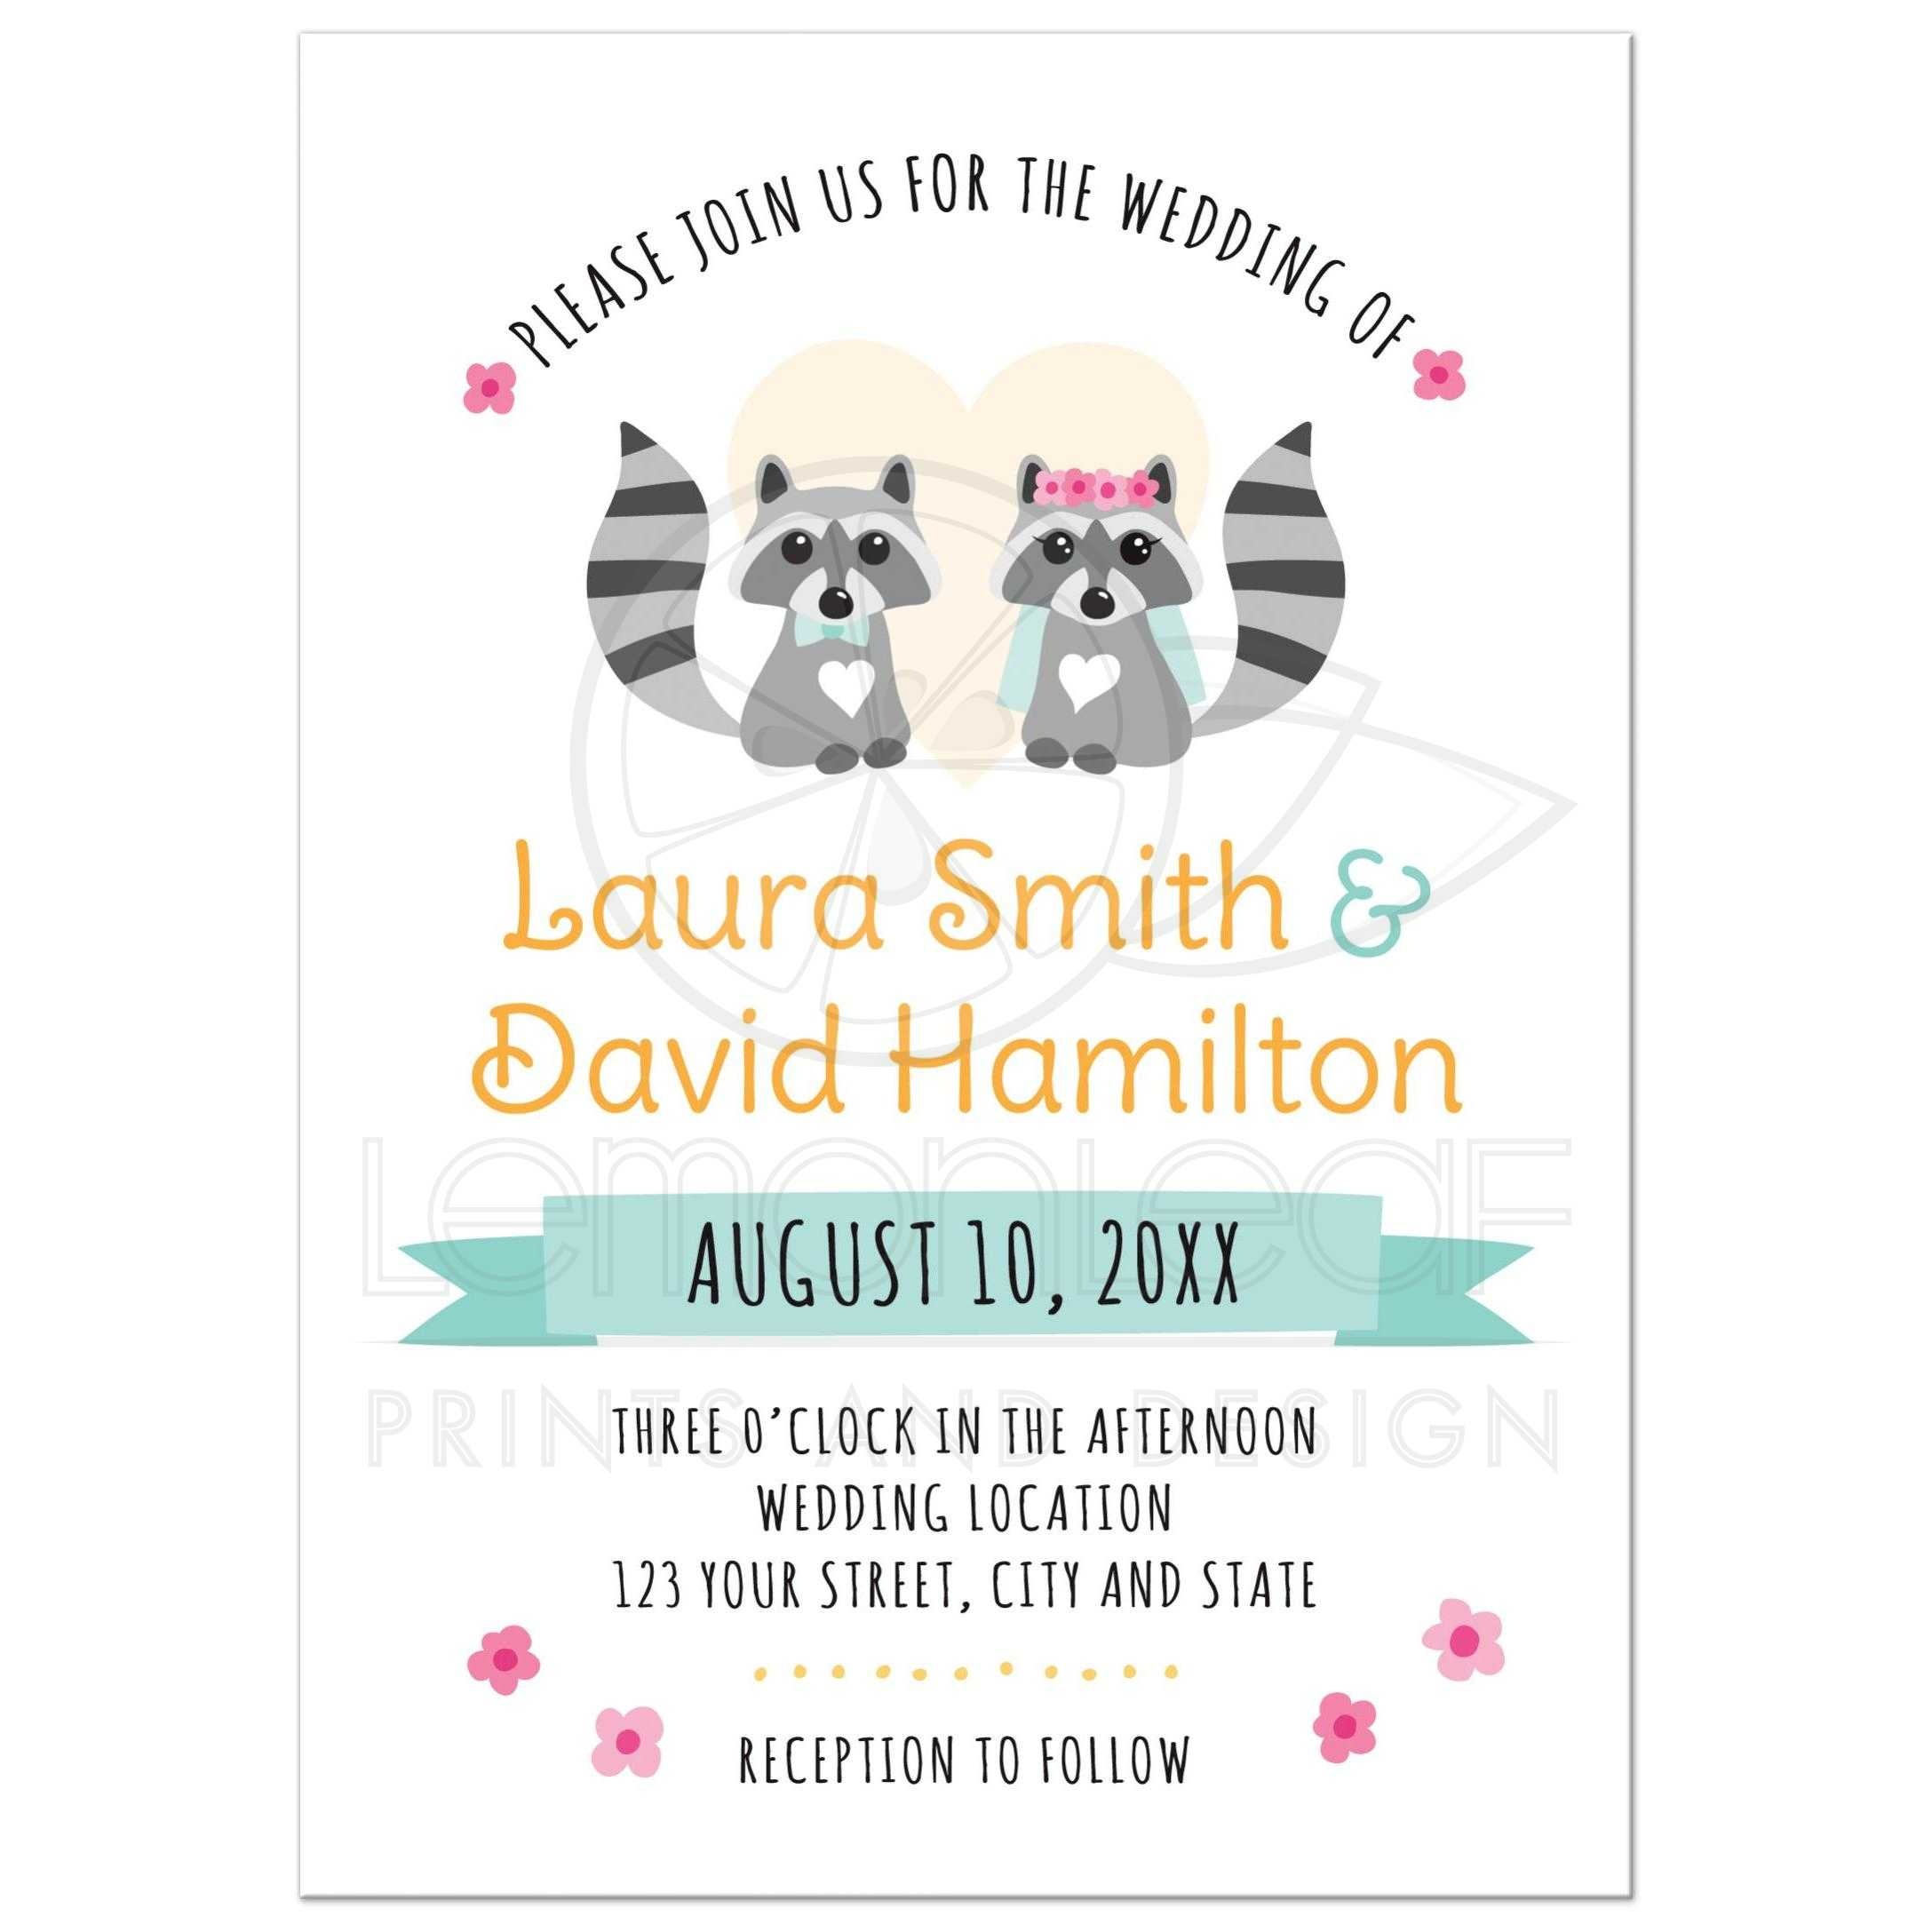 Cute raccoon bride and groom whimsical wedding invitation